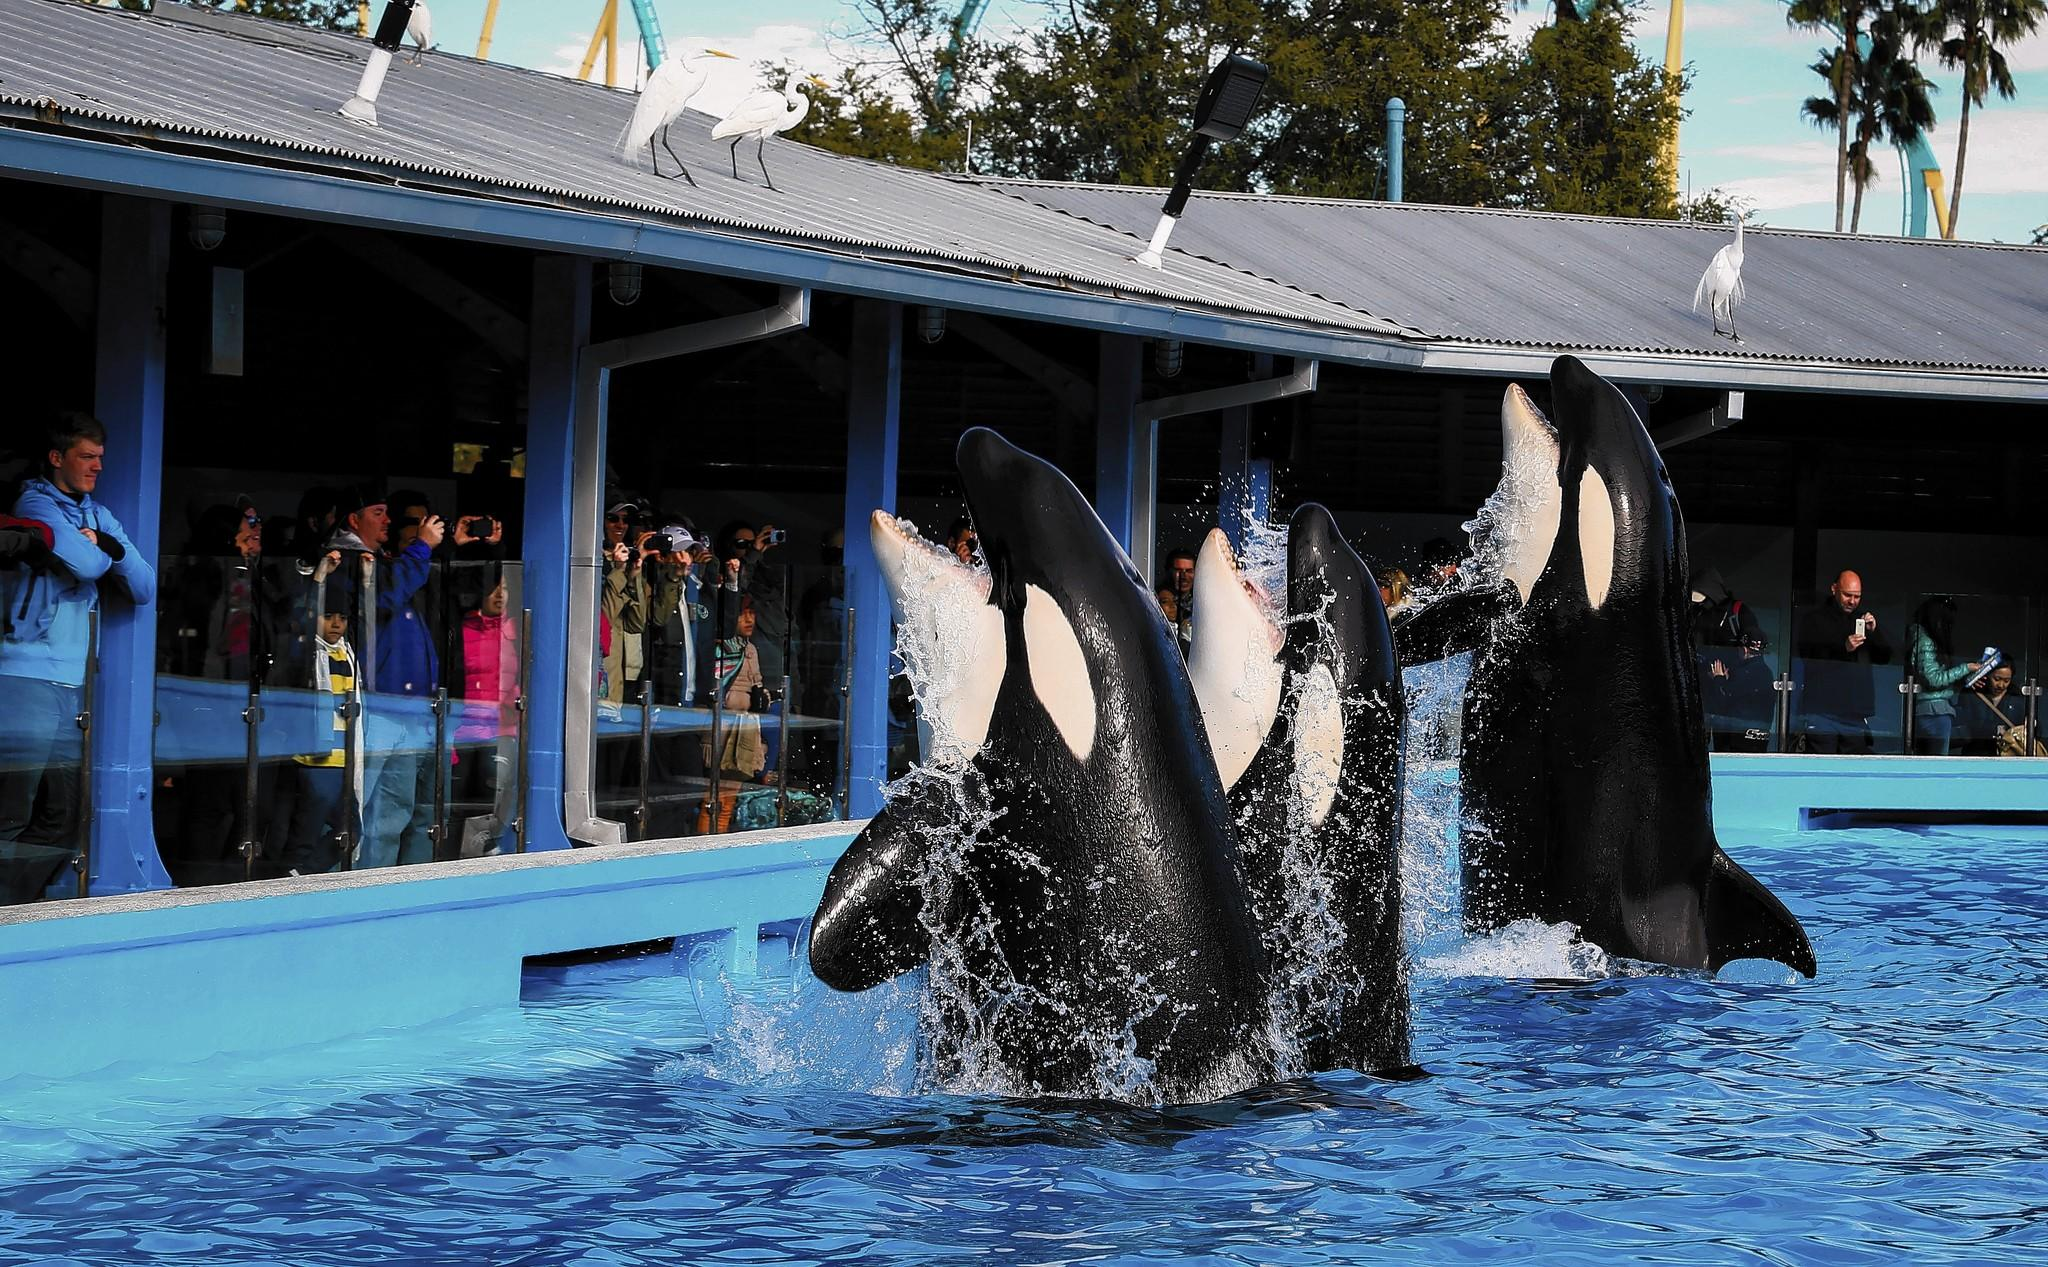 Trainers work with Orcas during a show at the Shamu up close attraction at Sea World in Orlando, FLA. on Tuesday, January 07, 2014.